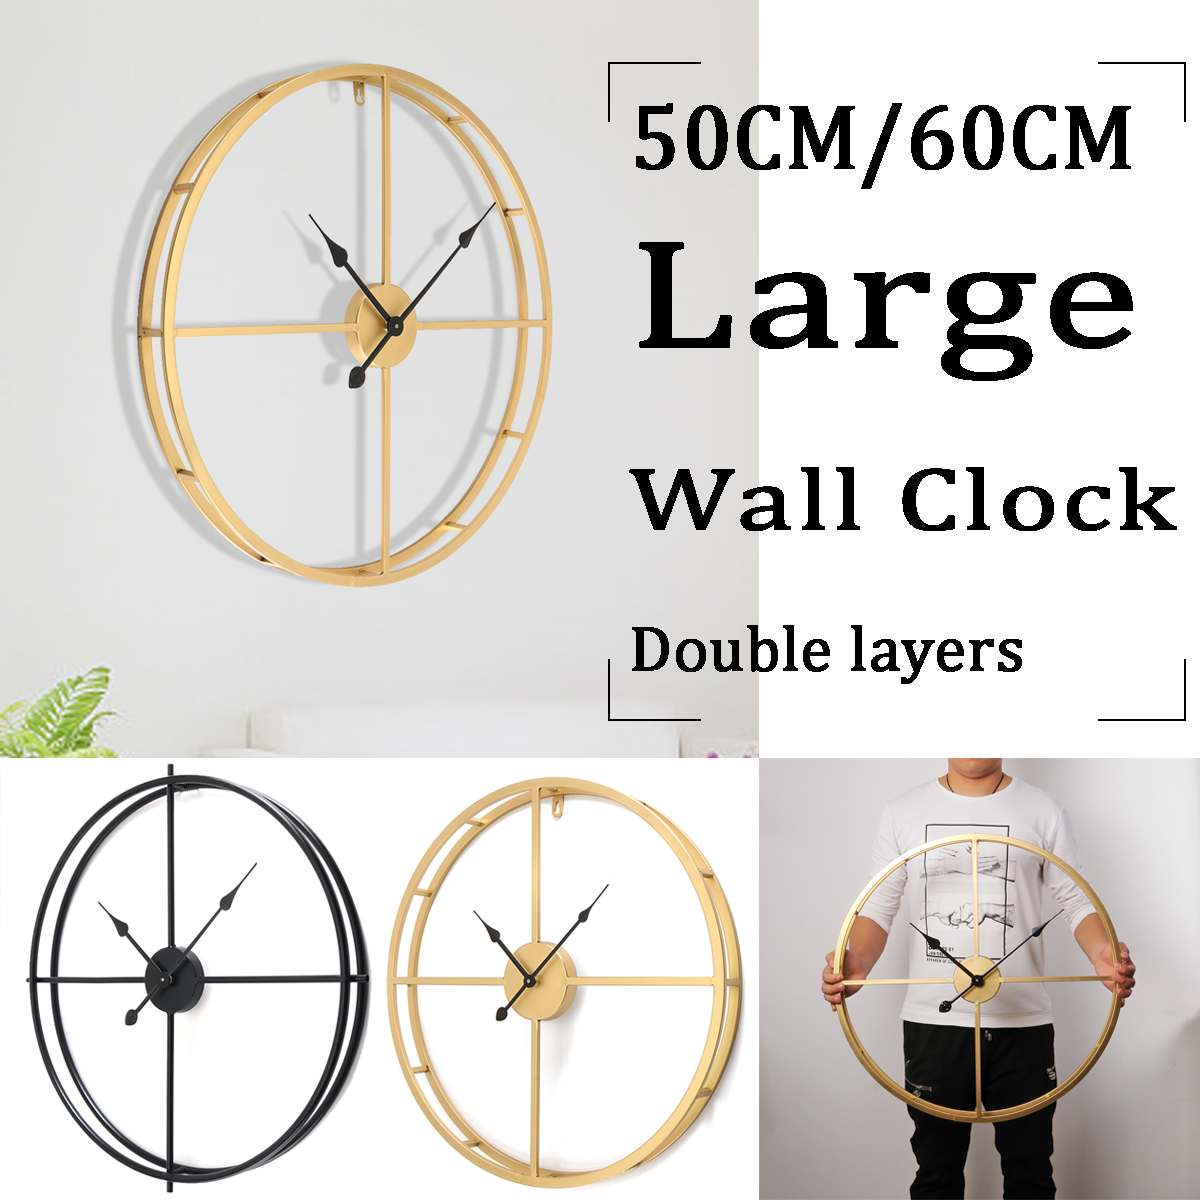 Large Vintage Style Metal Wall Clock Modern Double Layer Iron Frame Mute Watch for Home Livingroom Hotel Decor Gifts 50/60CMLarge Vintage Style Metal Wall Clock Modern Double Layer Iron Frame Mute Watch for Home Livingroom Hotel Decor Gifts 50/60CM